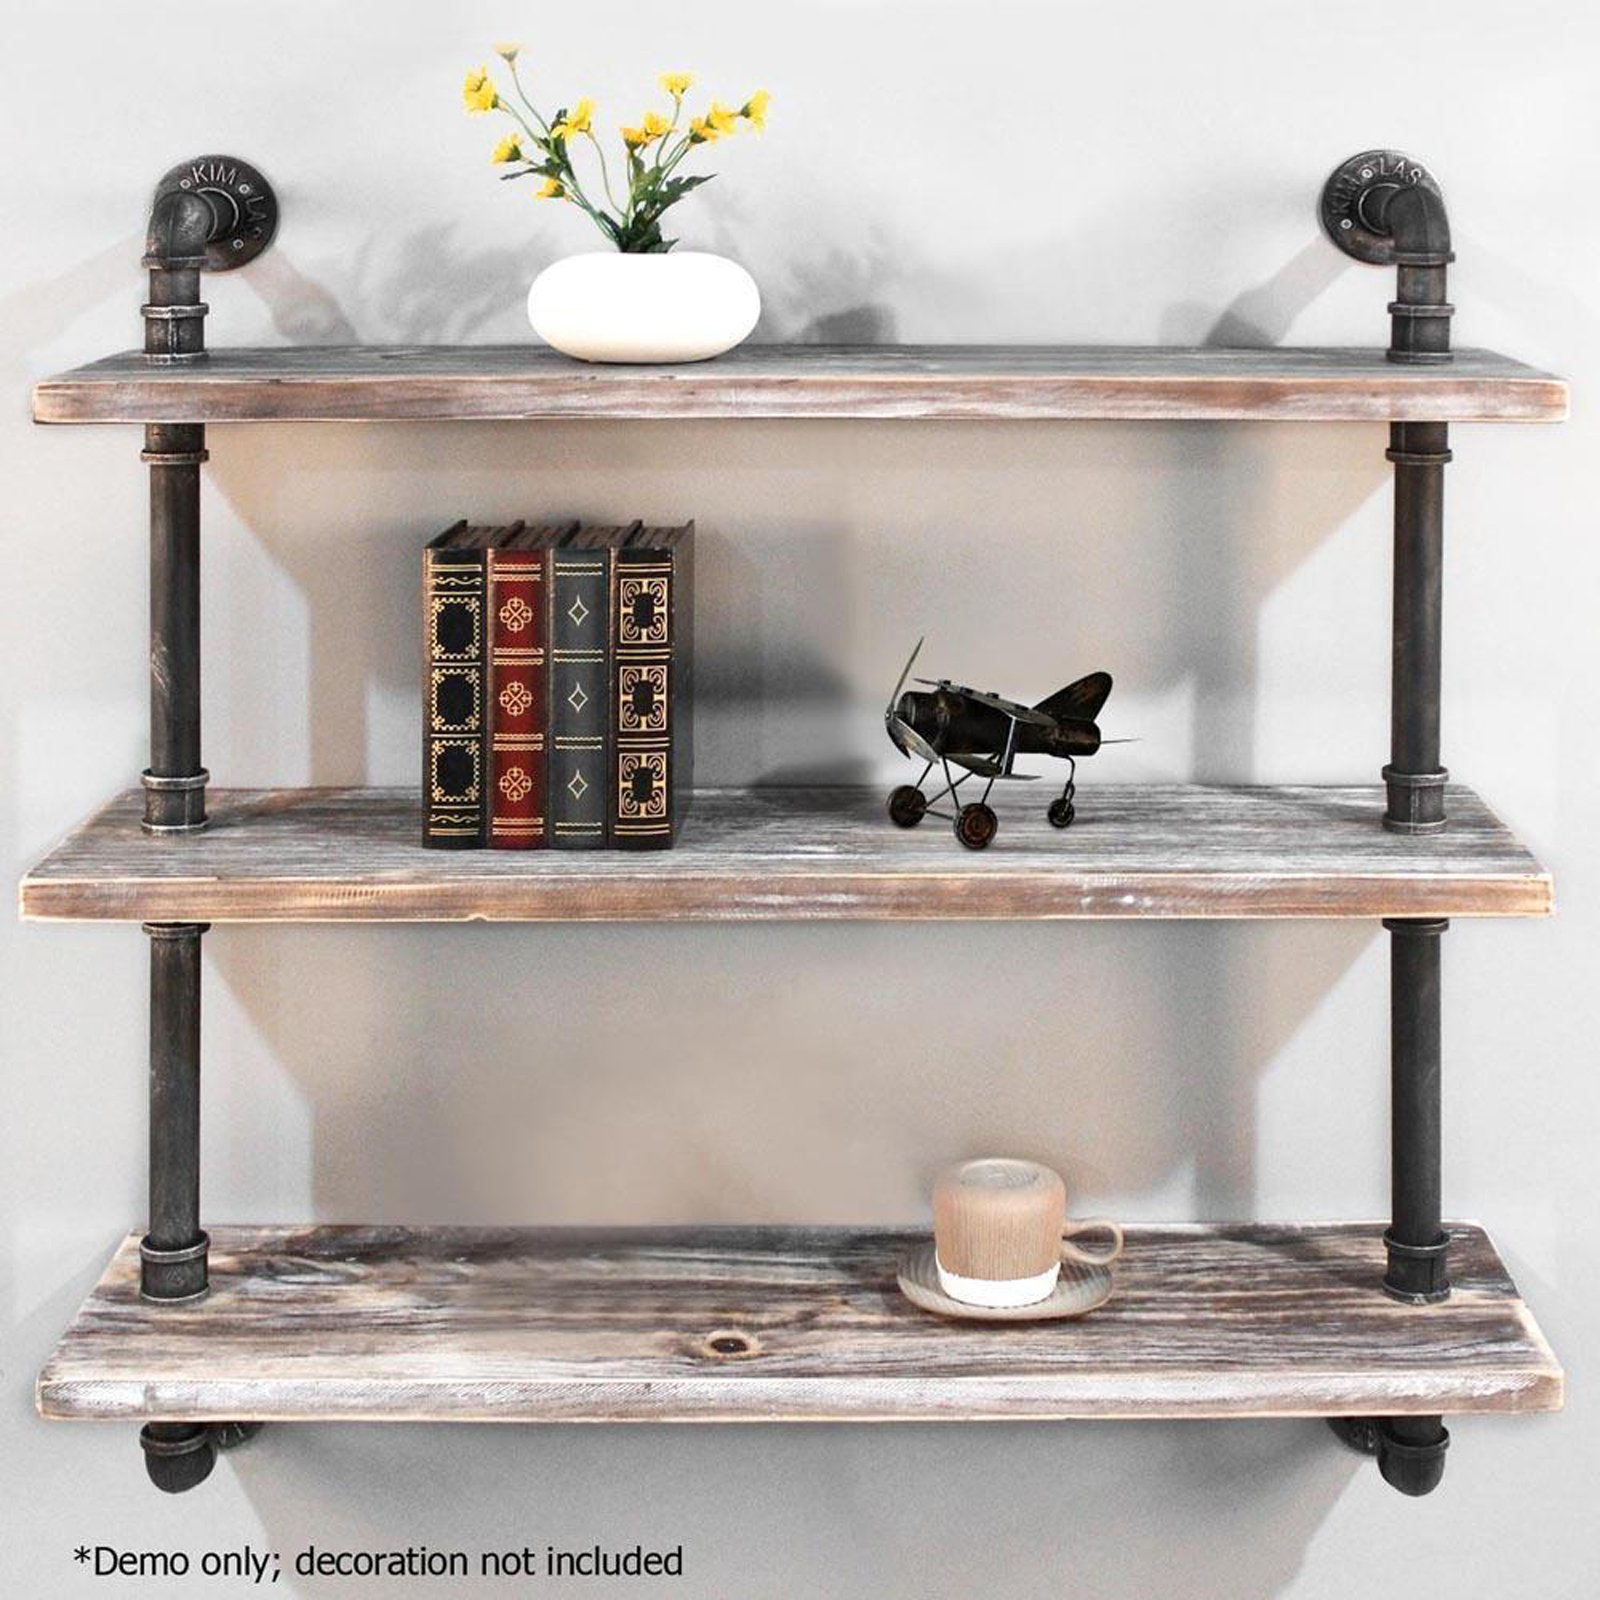 Details About Diwhy Shelves Industrial Shelf With Pipe Diy Retro Wall Mount Iron Pipe Shelf